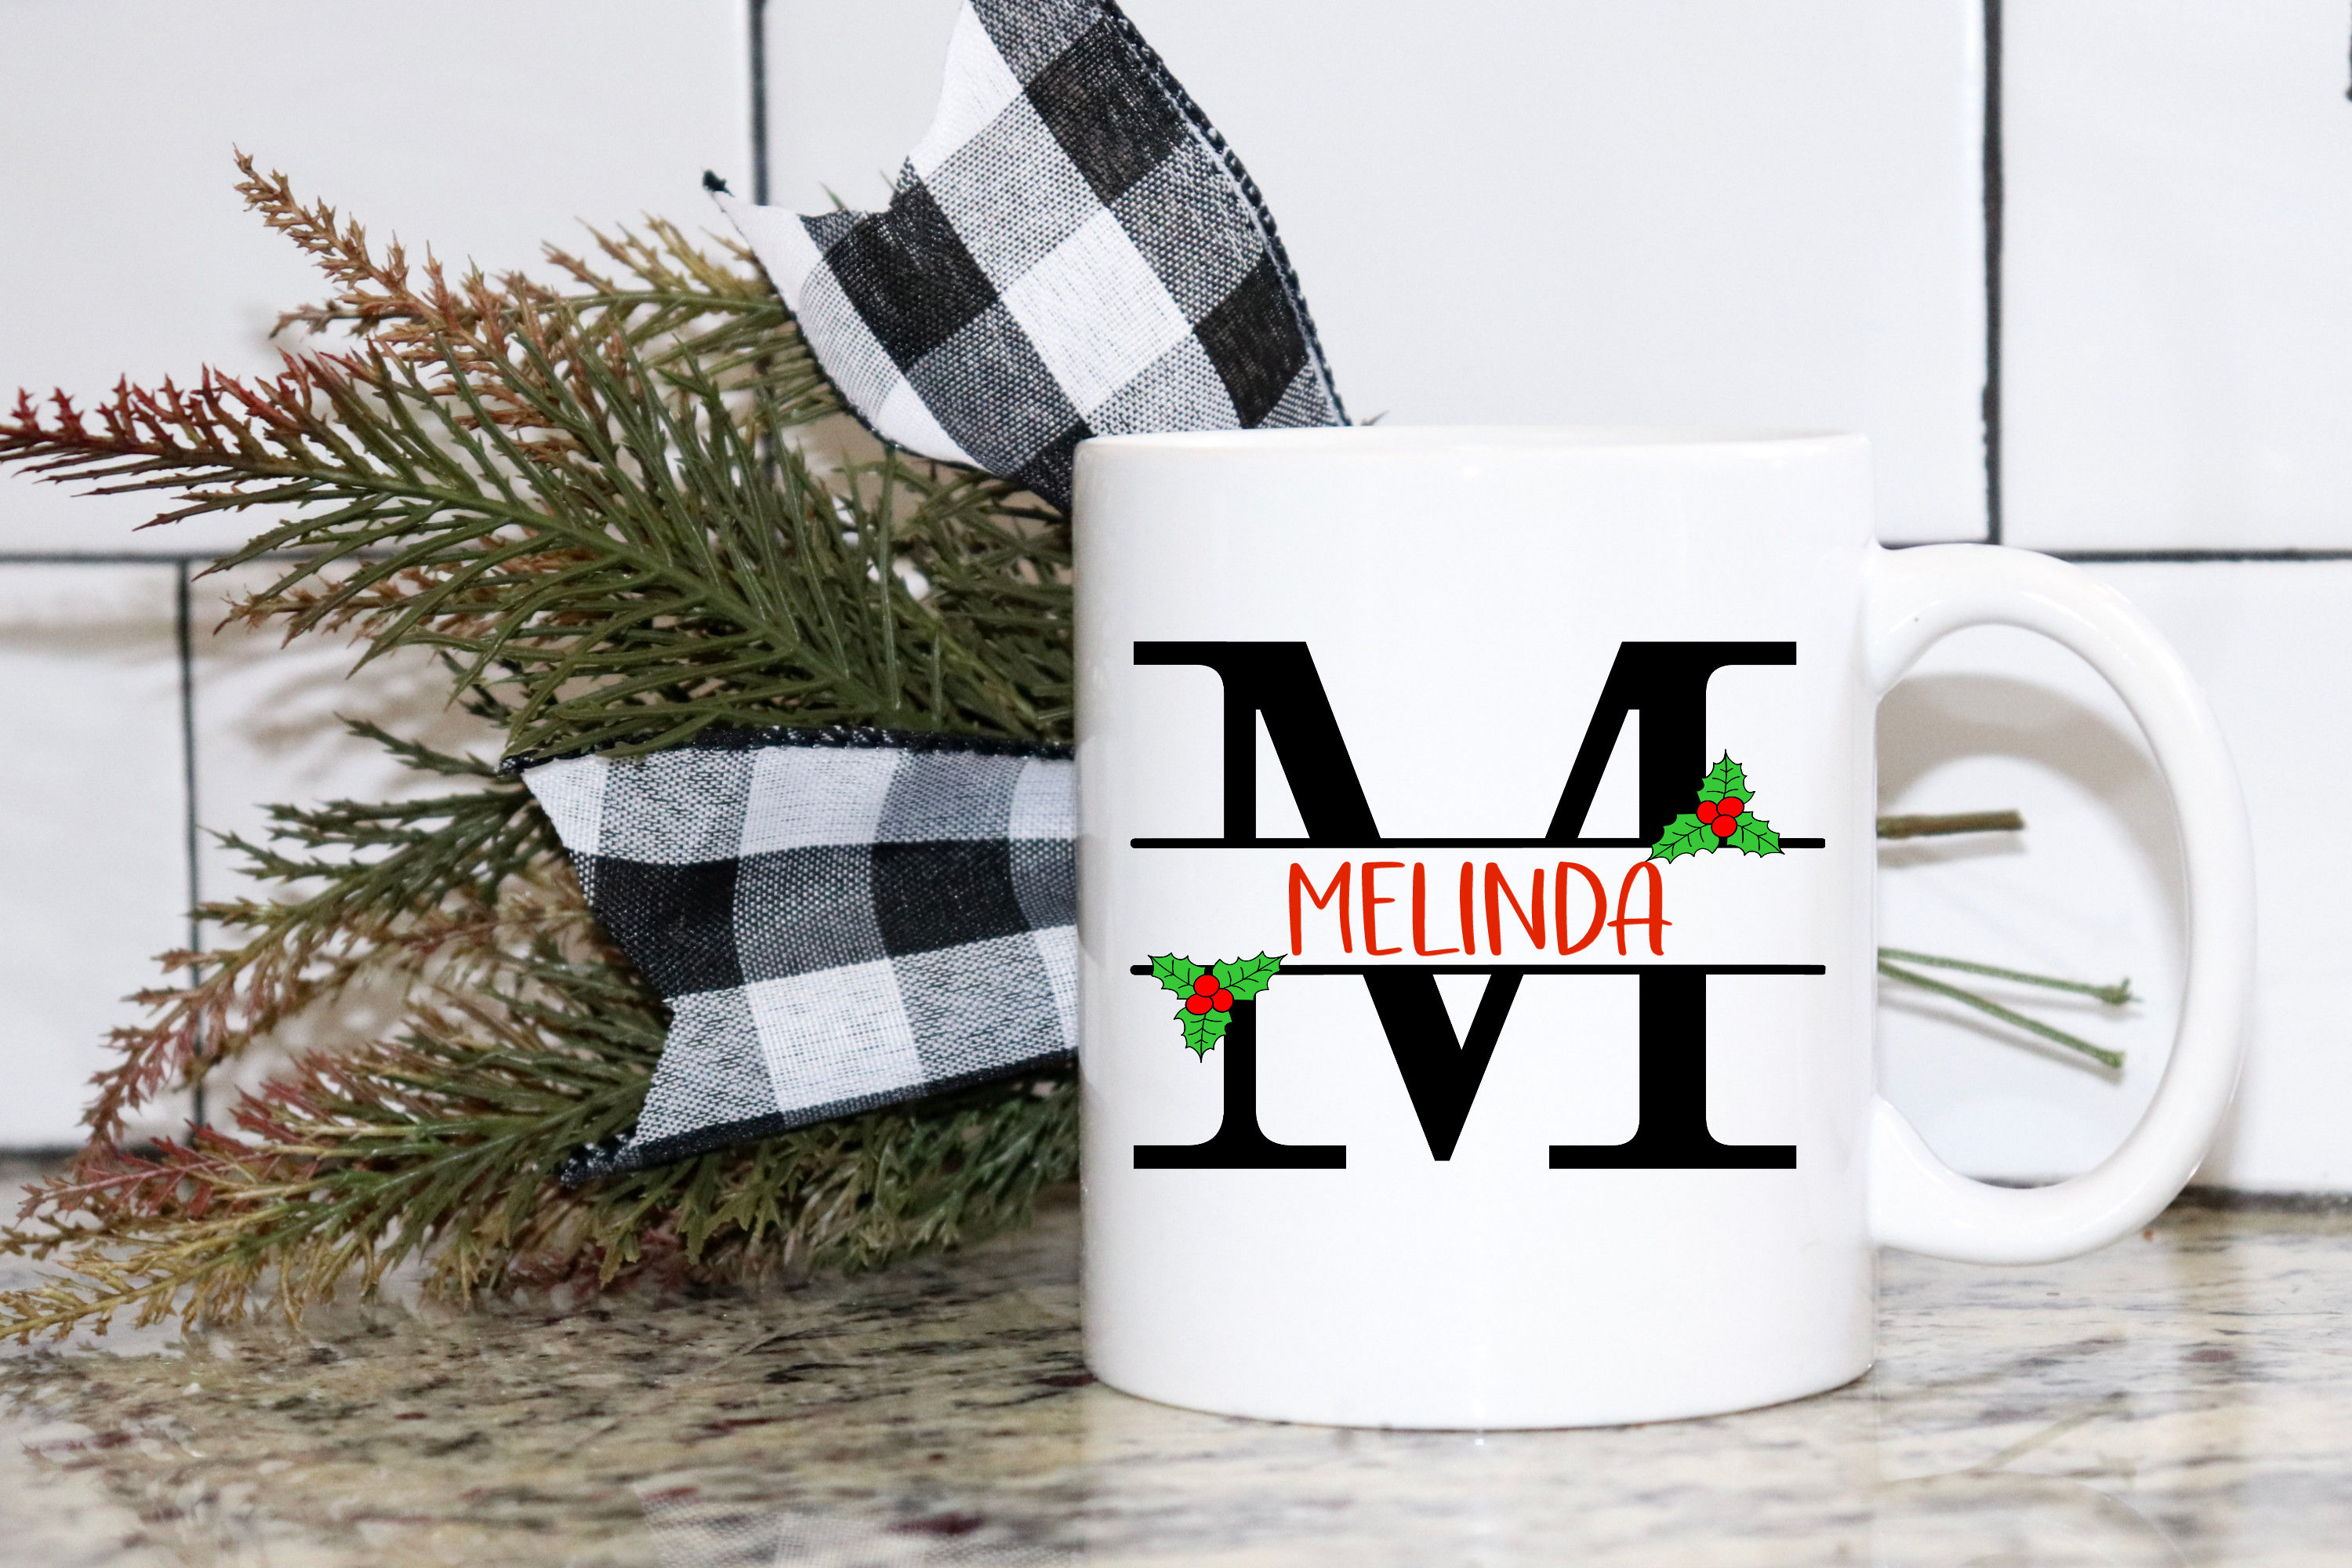 Split Letters A-Z - 26 Christmas split monograms with holly example image 4